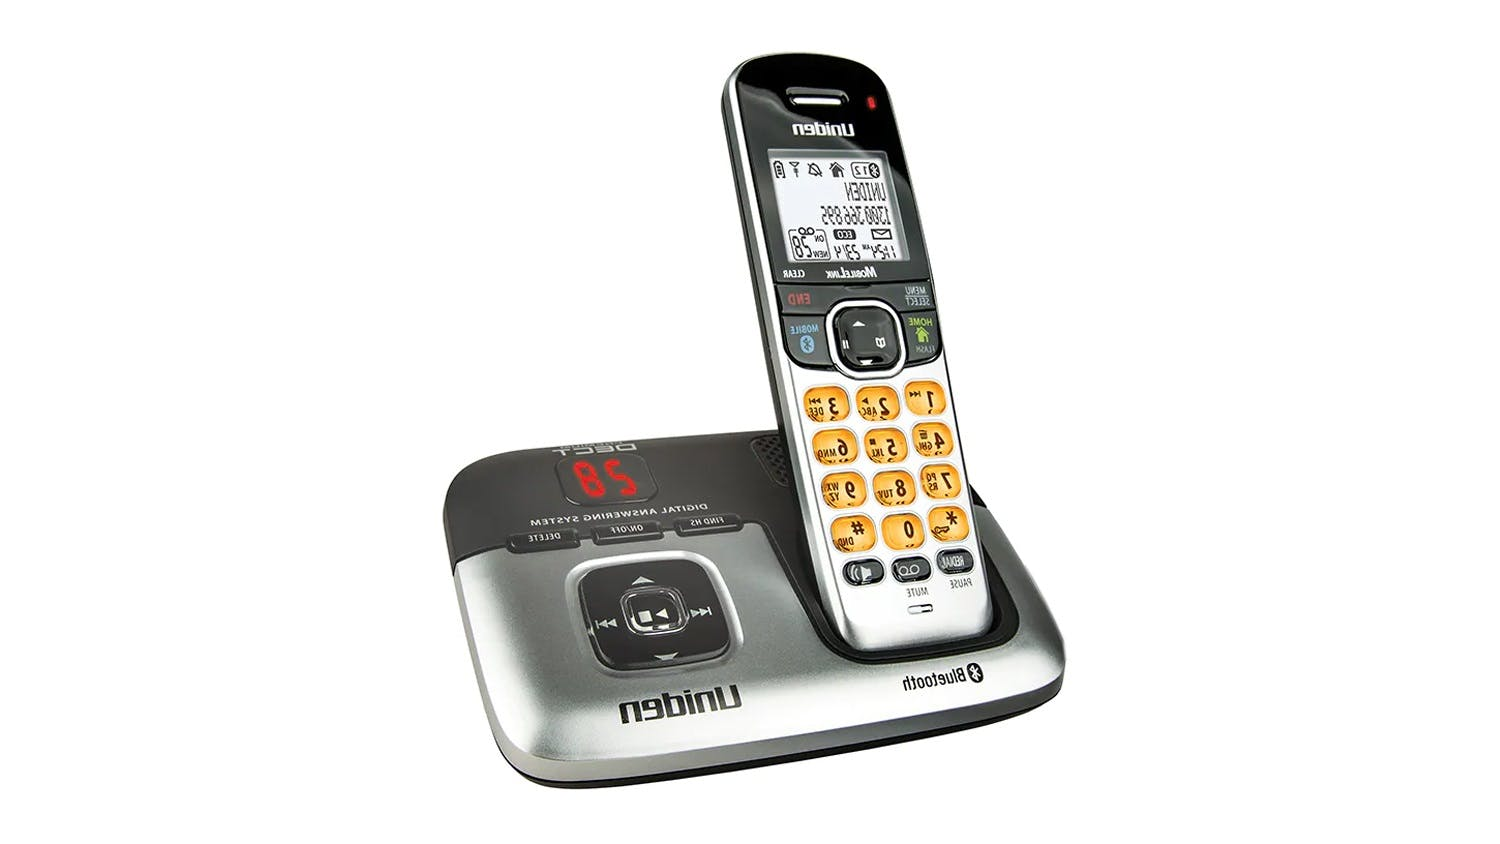 Uniden DECT 3236 Single Handset Cordless Phone